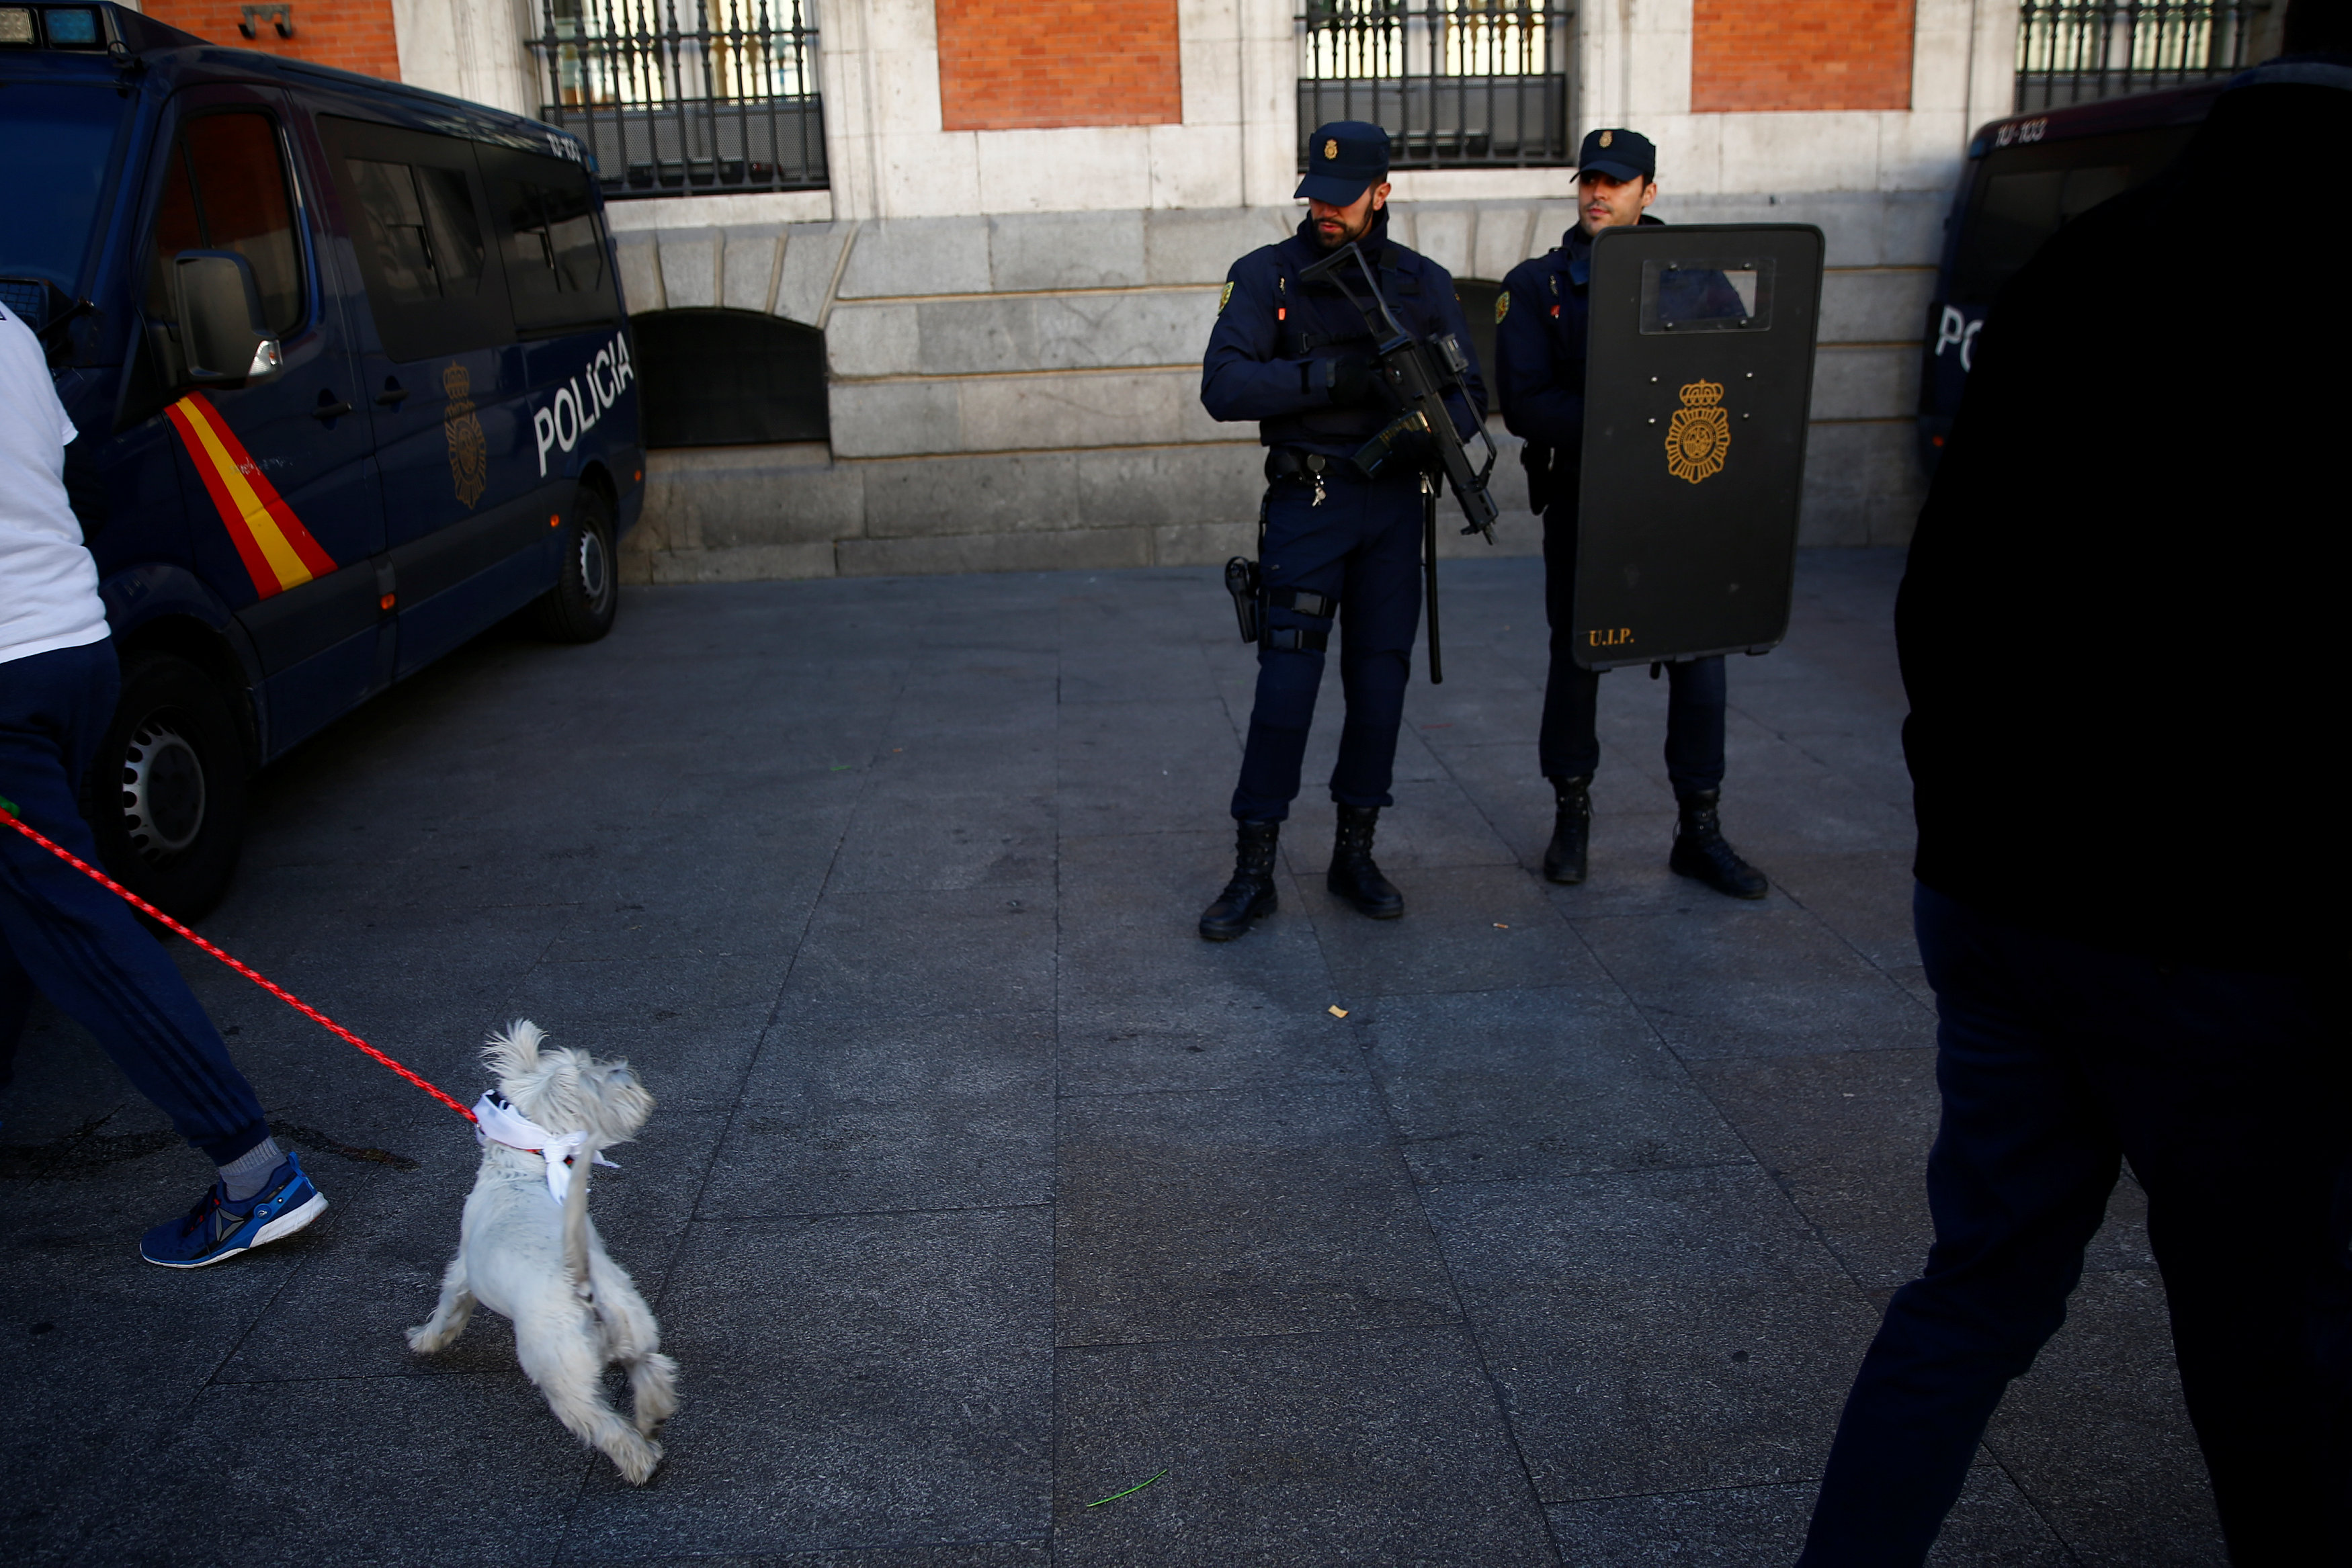 A dog turns around to look at police officers on patrol ahead of New Year's celebrations in central Madrid